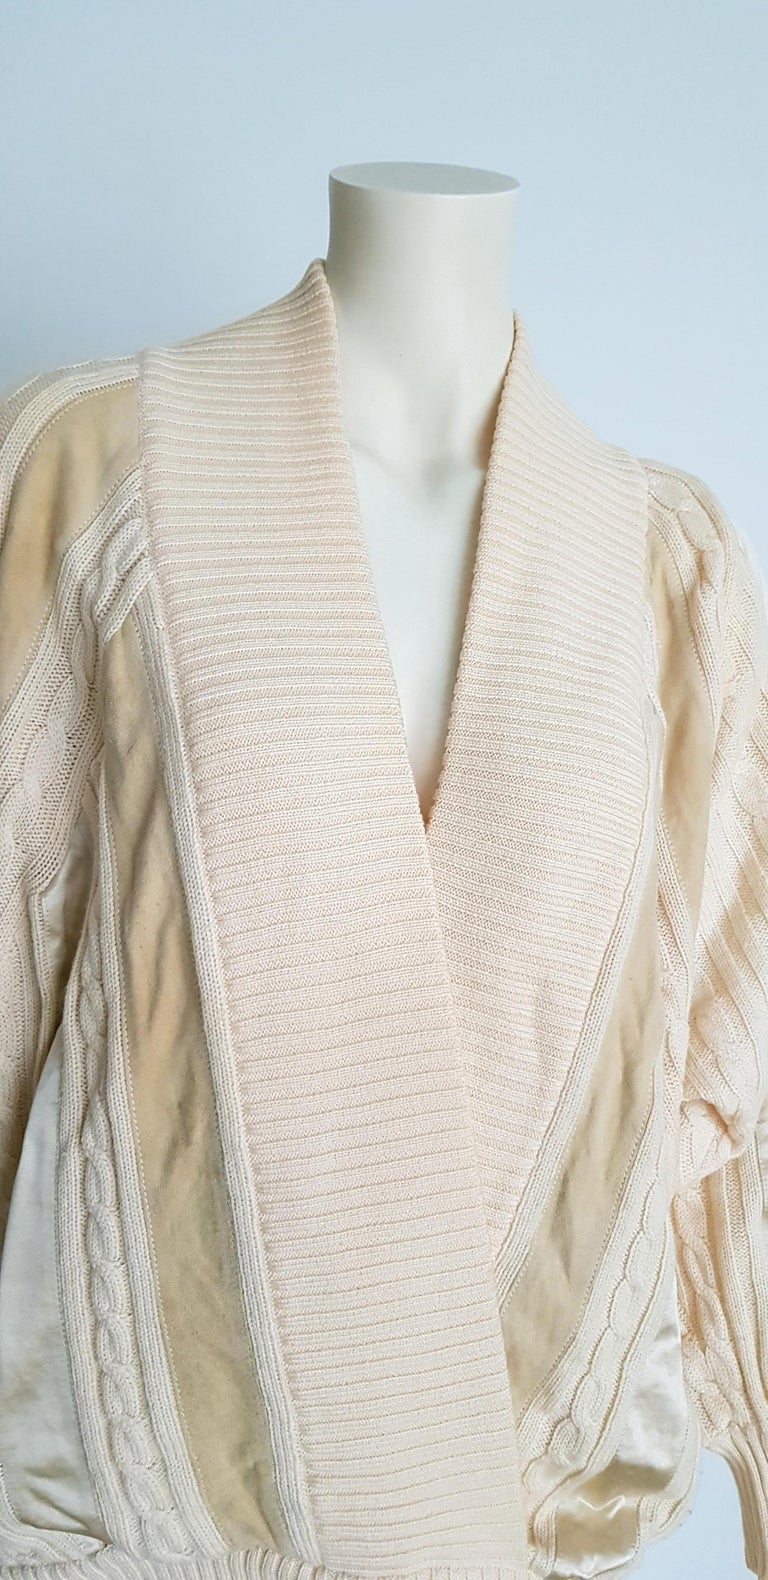 HERMES white cream wool collection sweater with silk suede strips - Unworn, New For Sale 2